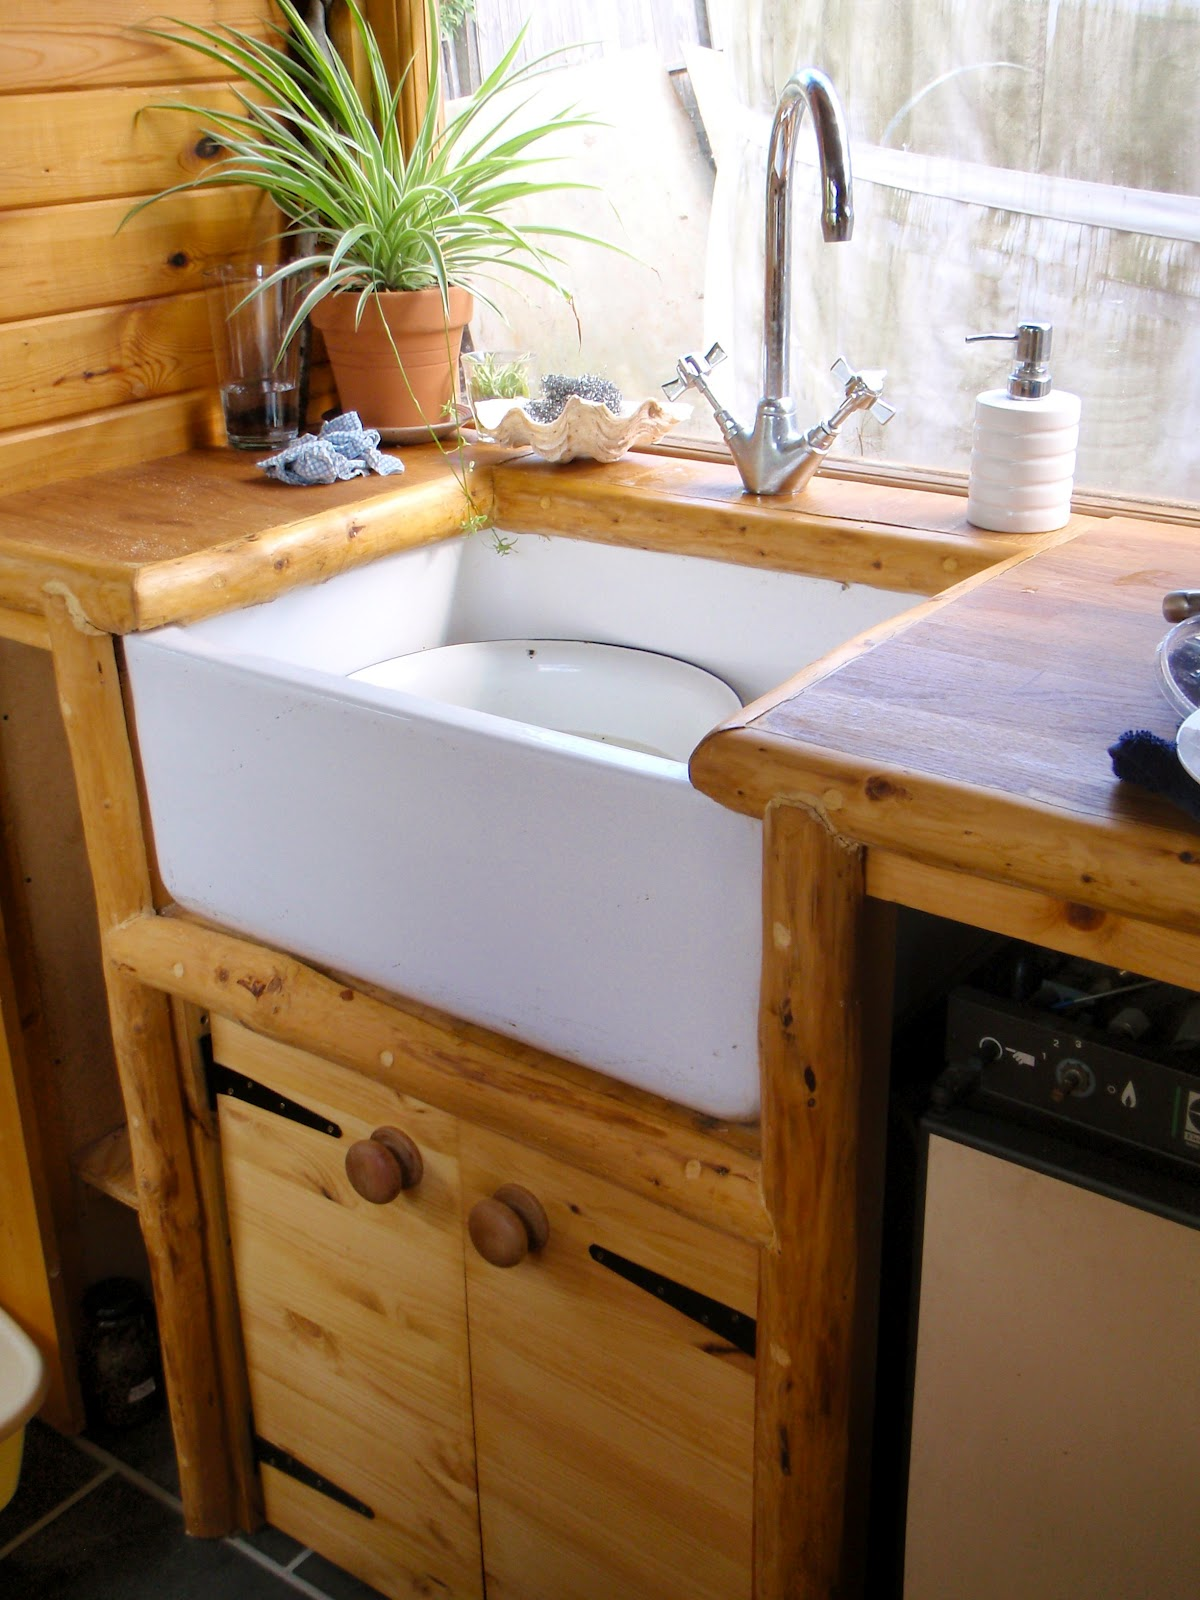 Bathroom And Kitchen Remodeling For A Bi Level Home: Handmade Matt: Kitchen And Bathroom Wagon